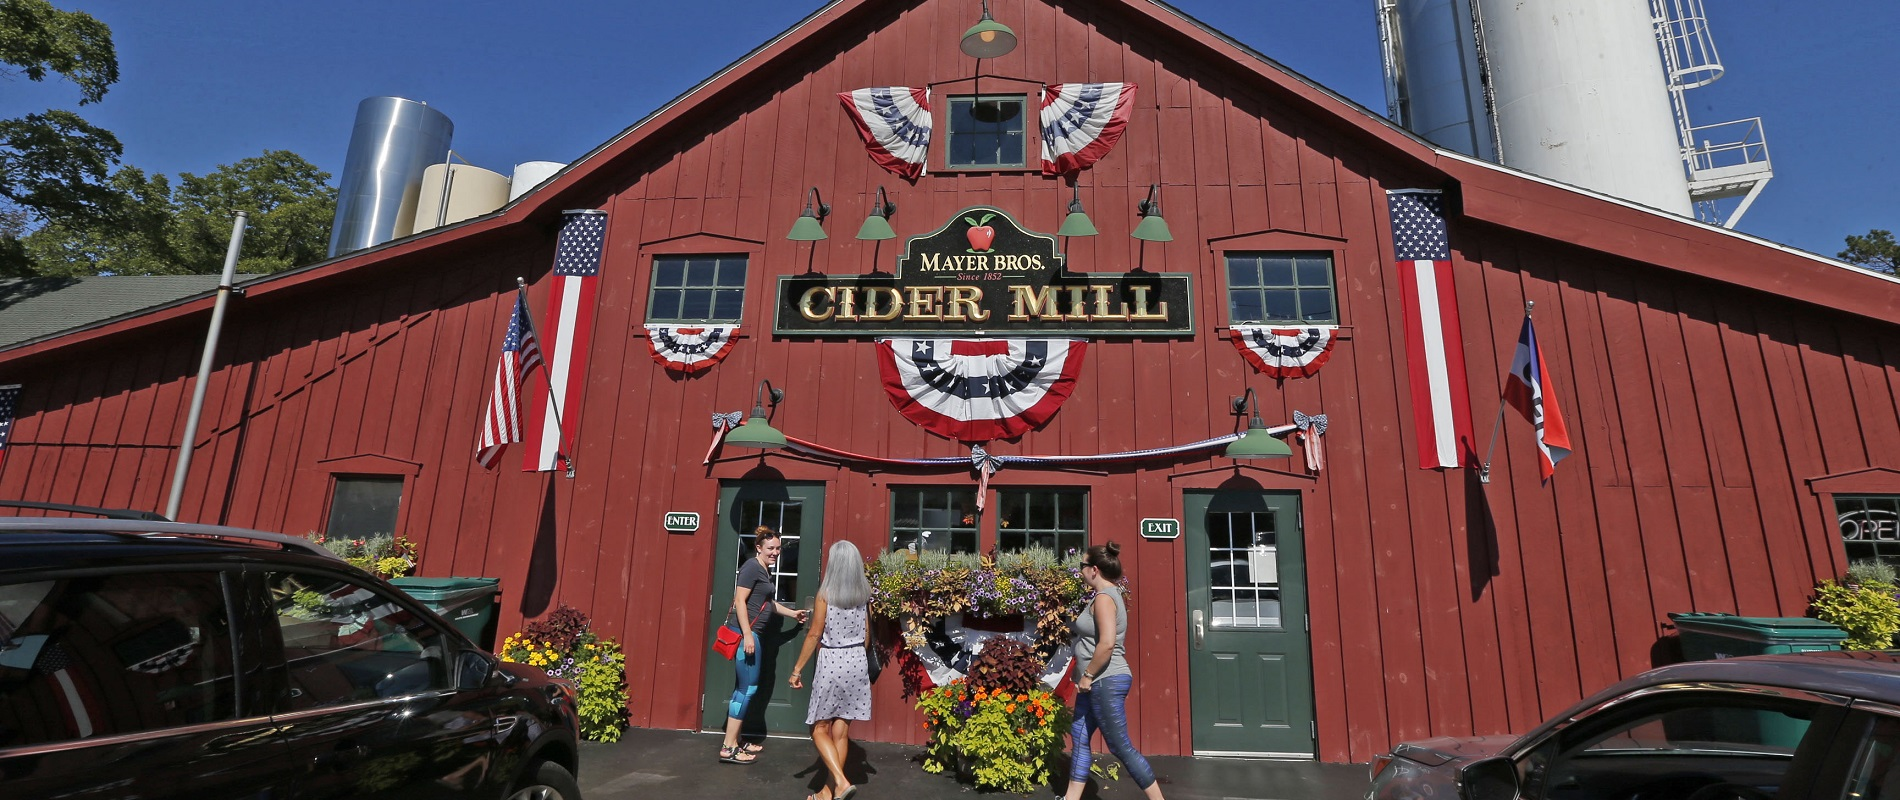 Mayer Bros. Cider Mill is just one example of what the Buffalo Niagara region has to offer. (Robert Kirkham/Buffalo News)